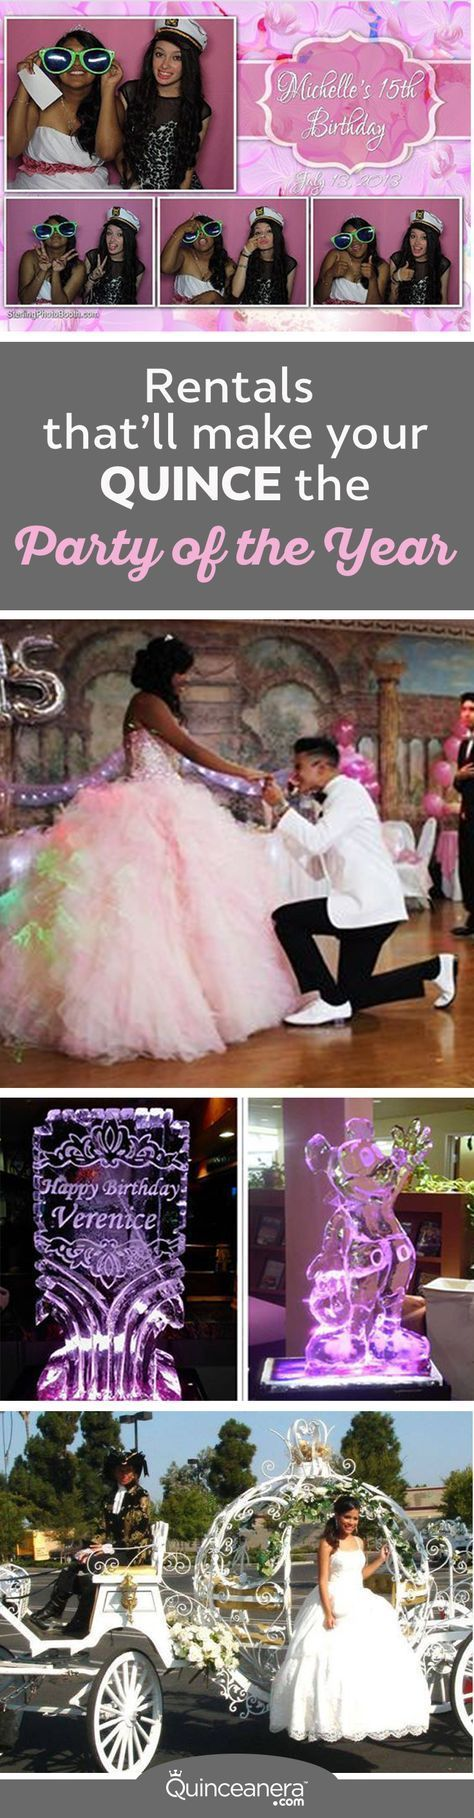 "Here are the top 6 Quince rentals that'll make your guests rate your celebration ""Party of the Year!"" - See more at: http://www.quinceanera.com/planning/quince-rentals-thatll-make-celebration-party-year/?utm_source=pinterest&utm_medium=social&utm_campaign=planning-quince-rentals-thatll-make-celebration-party-year#sthash.GVelCJUx.dpuf"